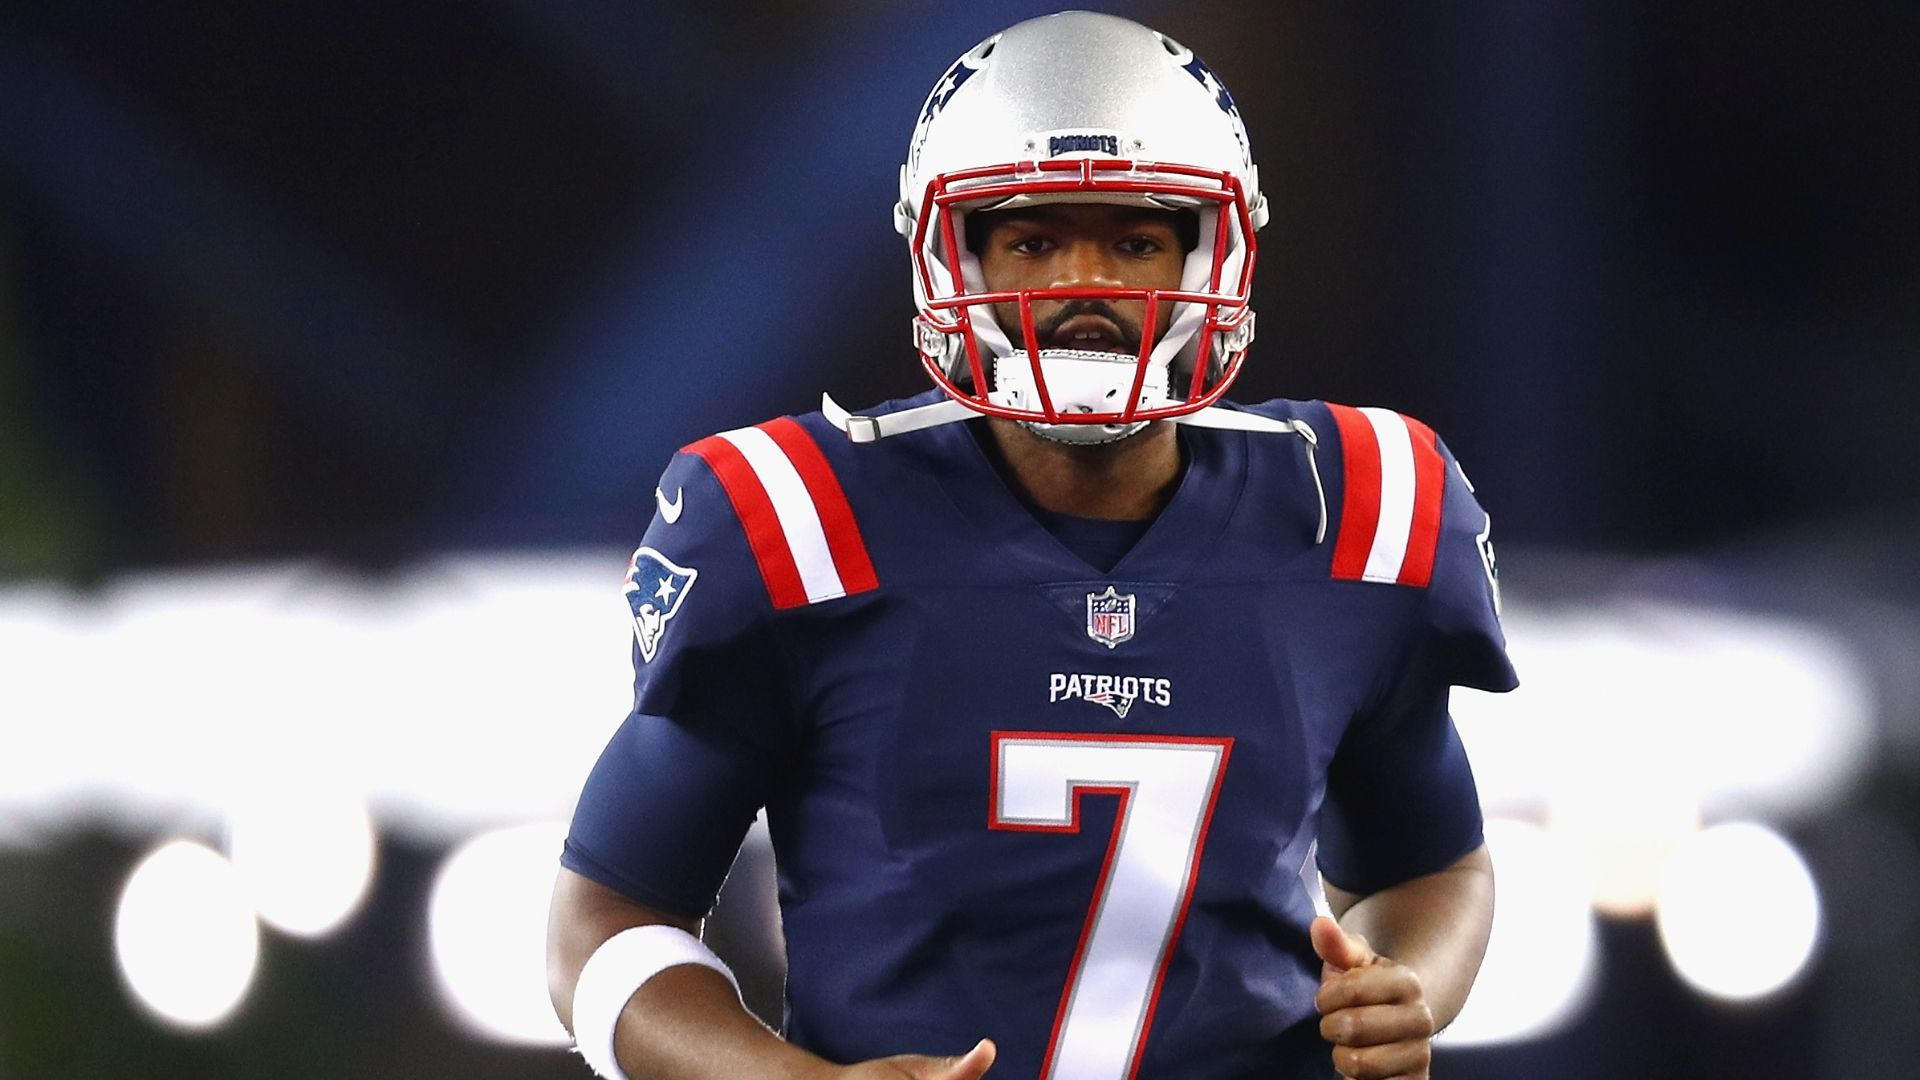 Patriots unsure of severity of Brissett injury